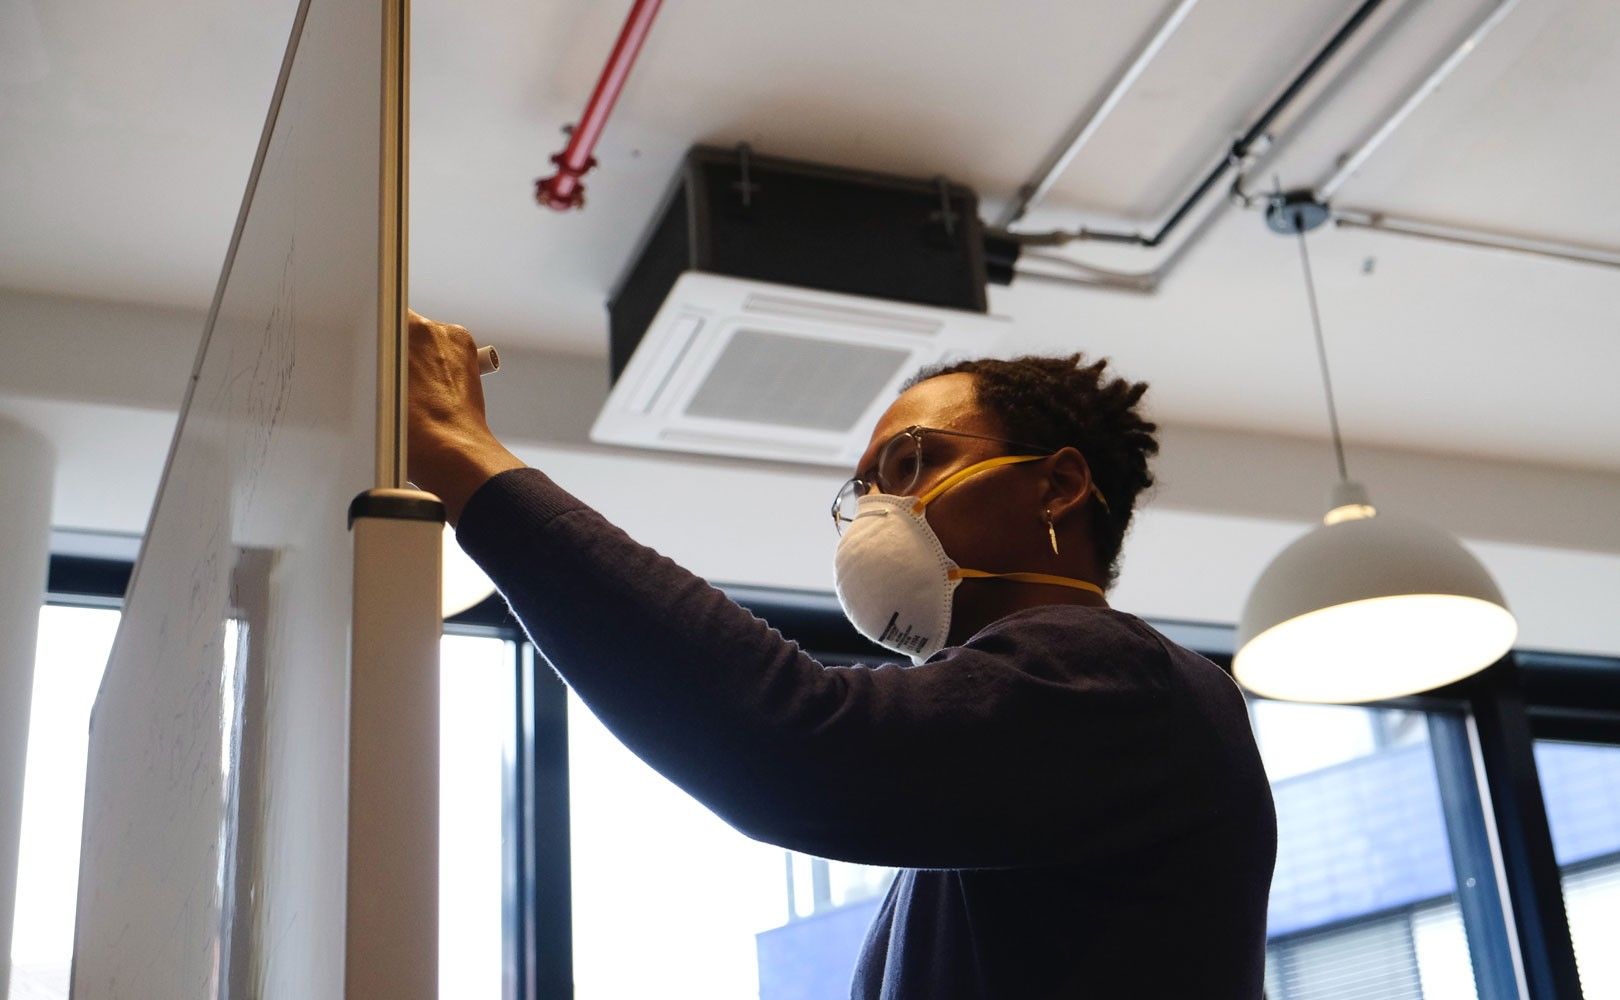 Photo of person wearing face mask writing on white board in office